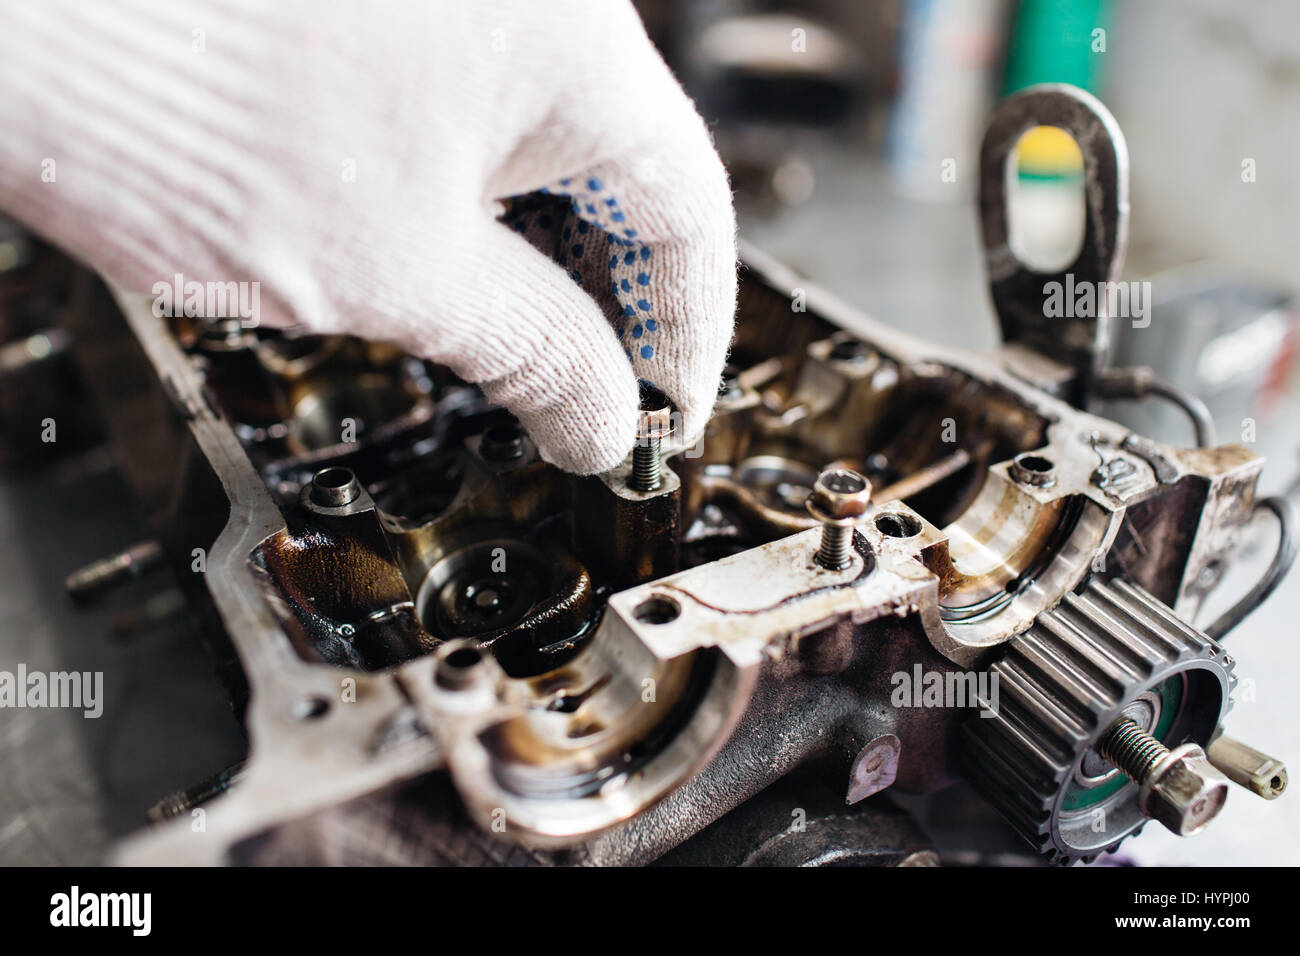 Engine crankshaft, valve cover, pistons. mechanic repairman at automobile car engine maintenance repair work - Stock Image